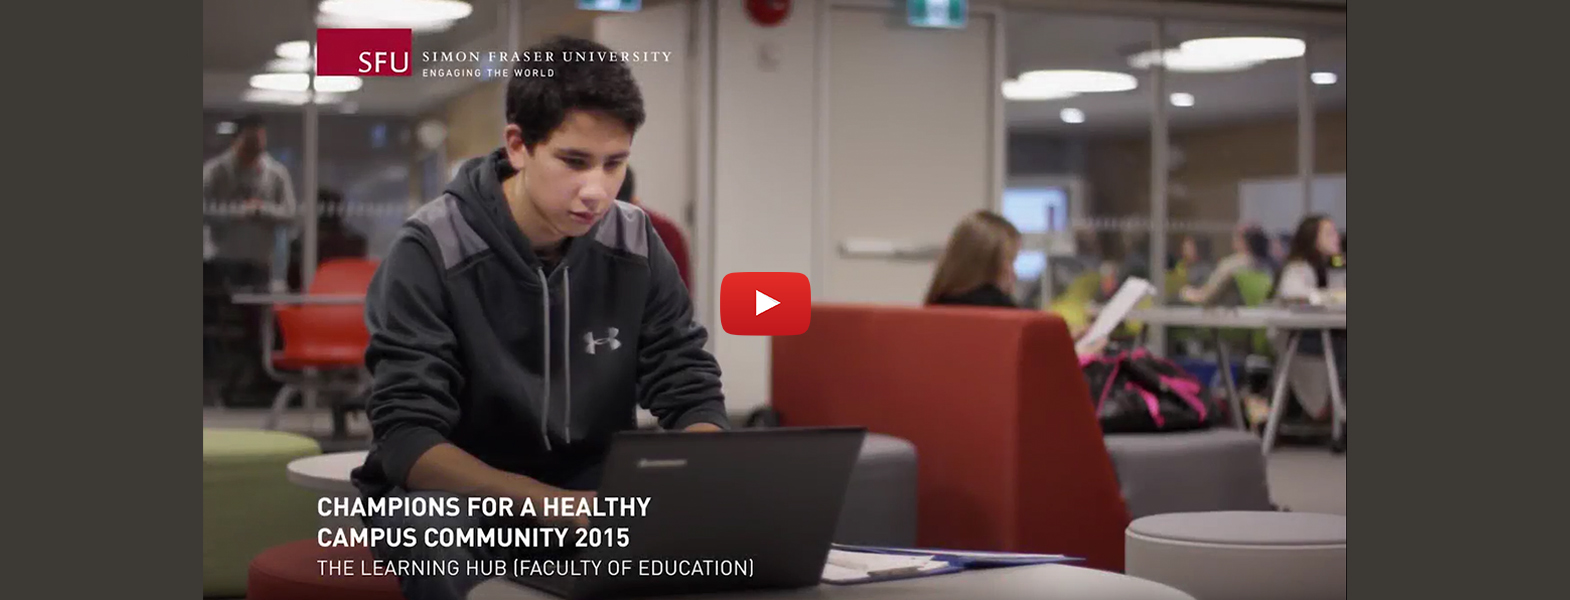 Education's Learning Hub a healthy campus champion